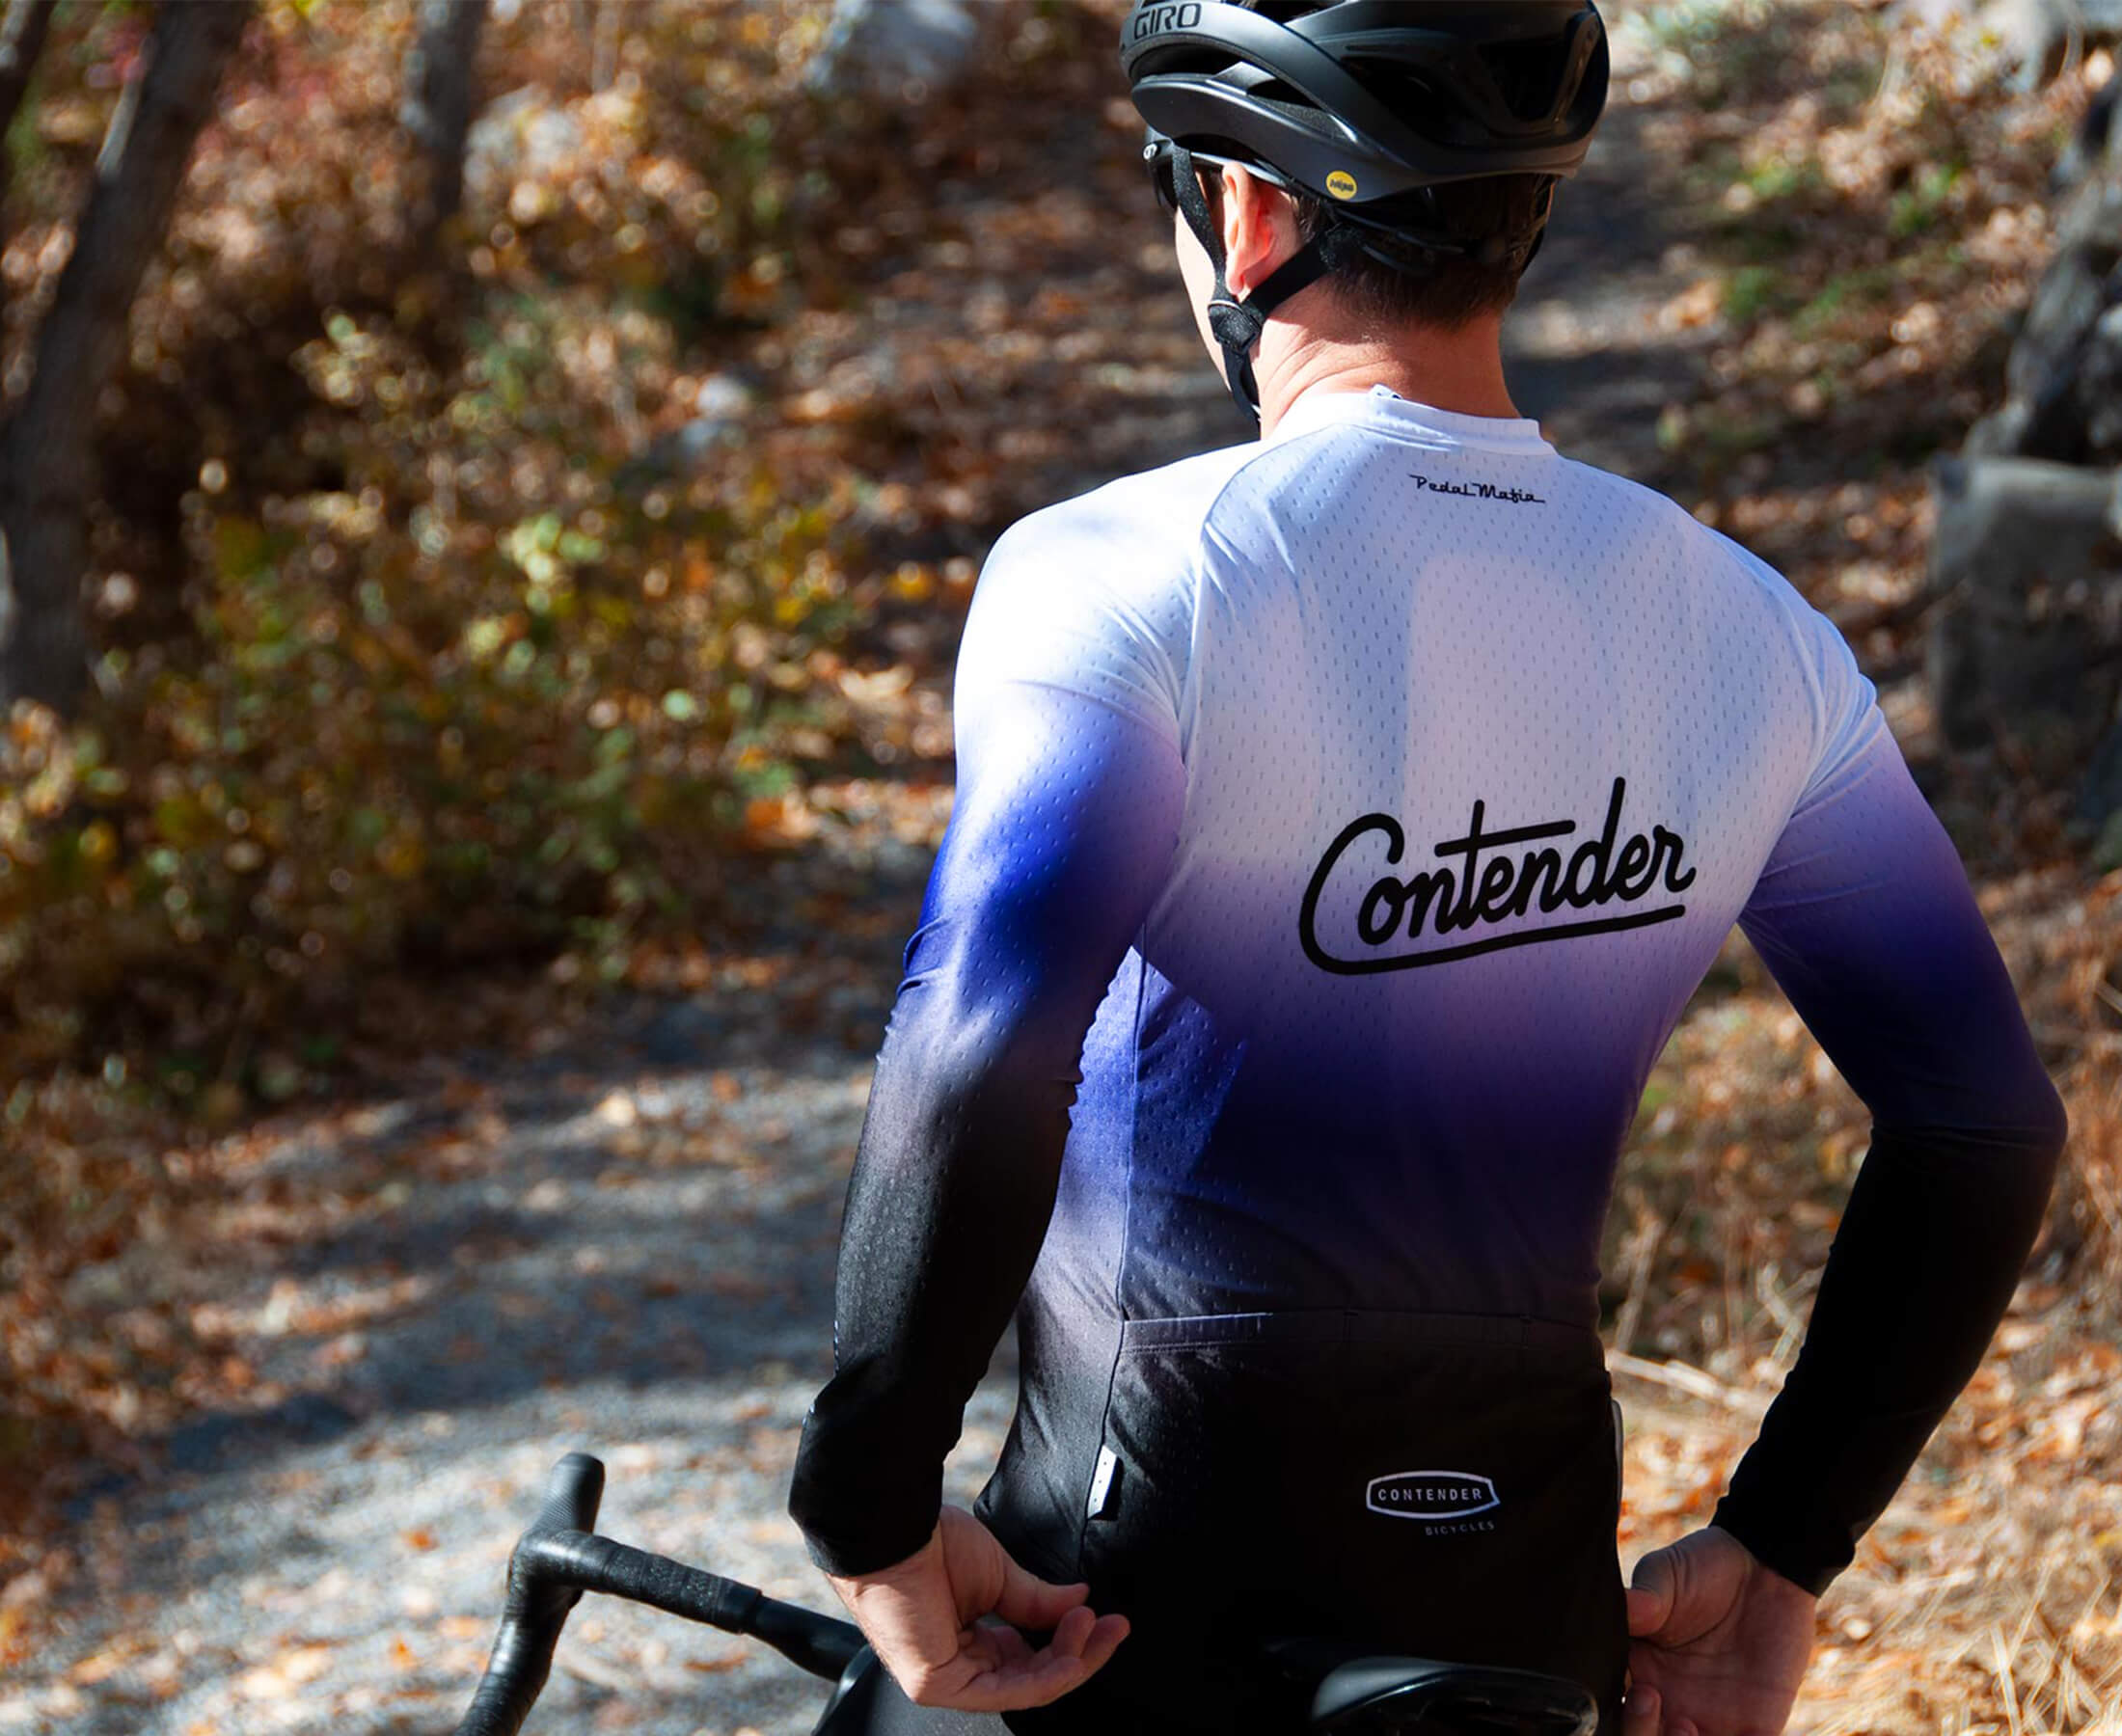 ContenderXPedal Mafia Jersey Details - Contender Bicycles